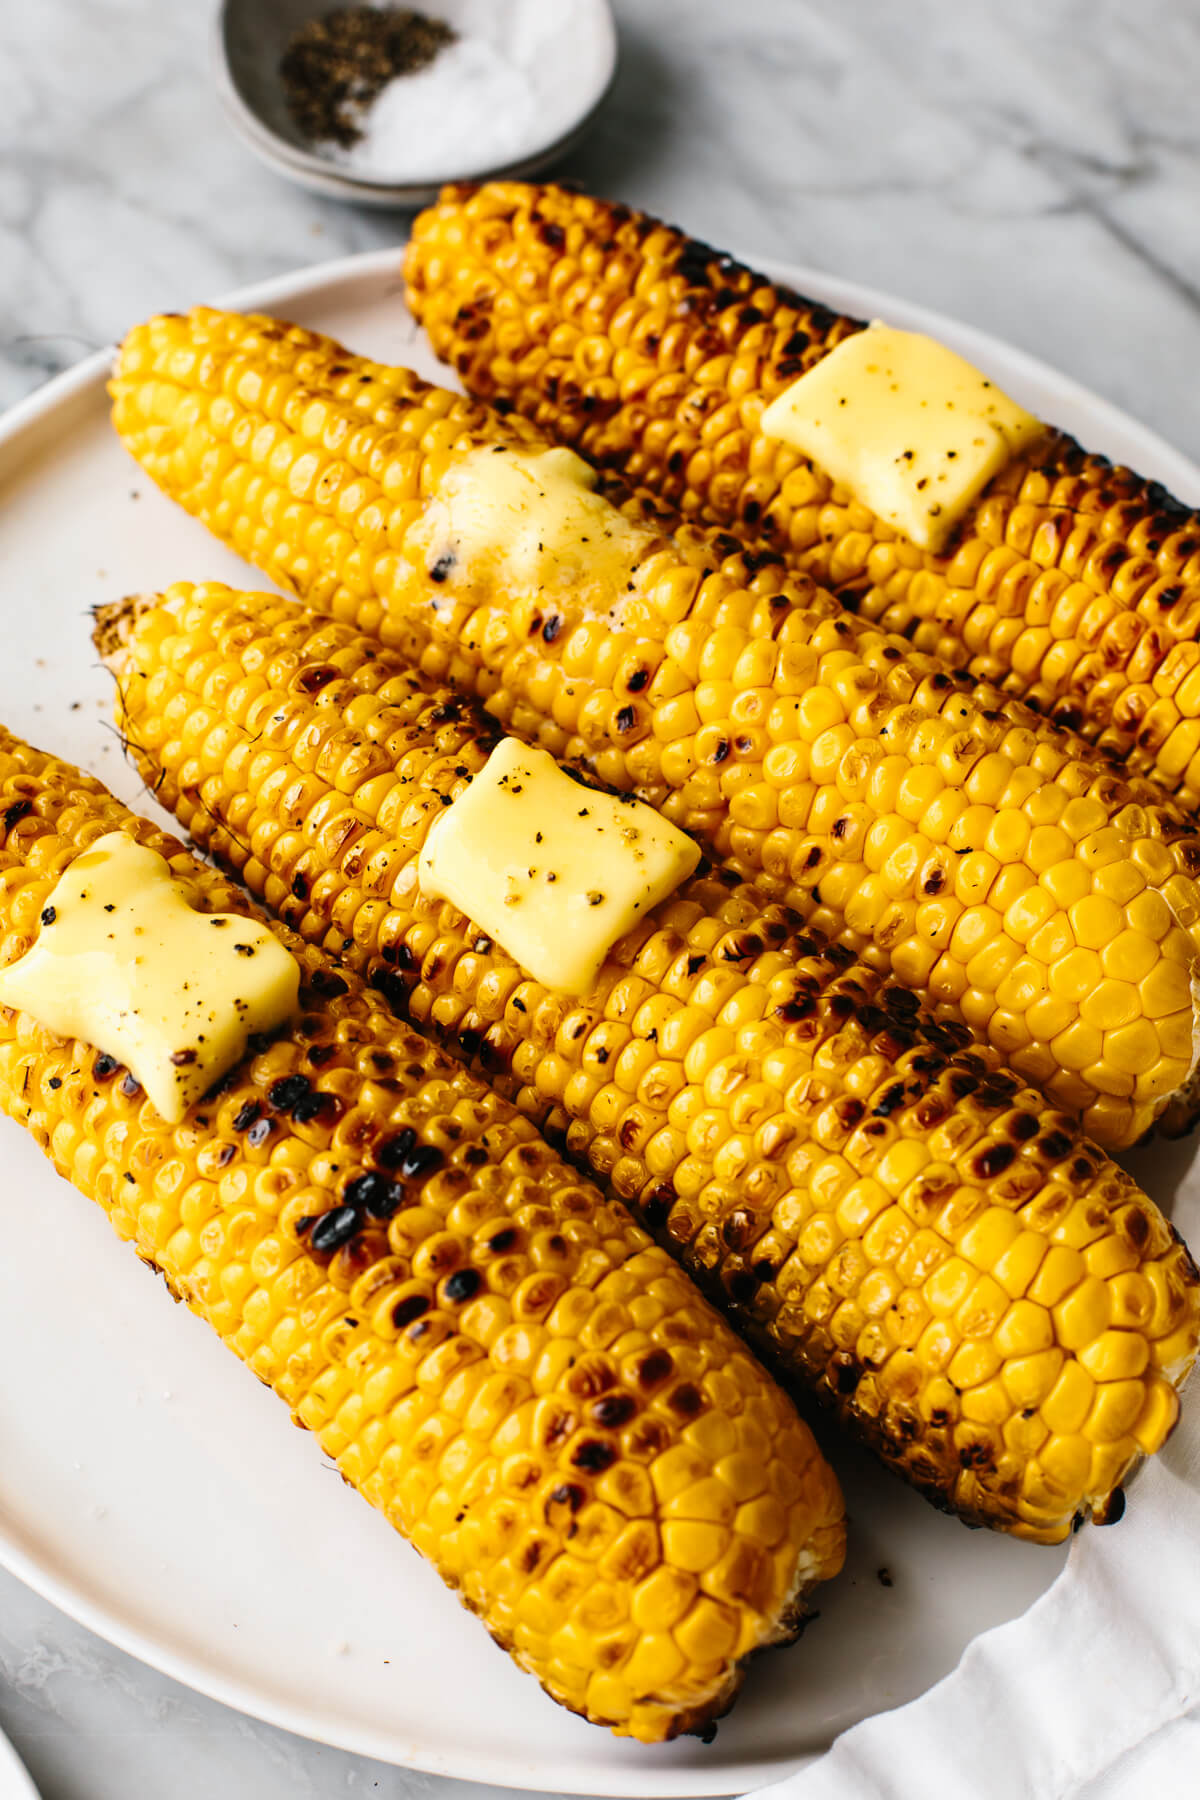 Grilled corn on the cobs withe butter on a plate